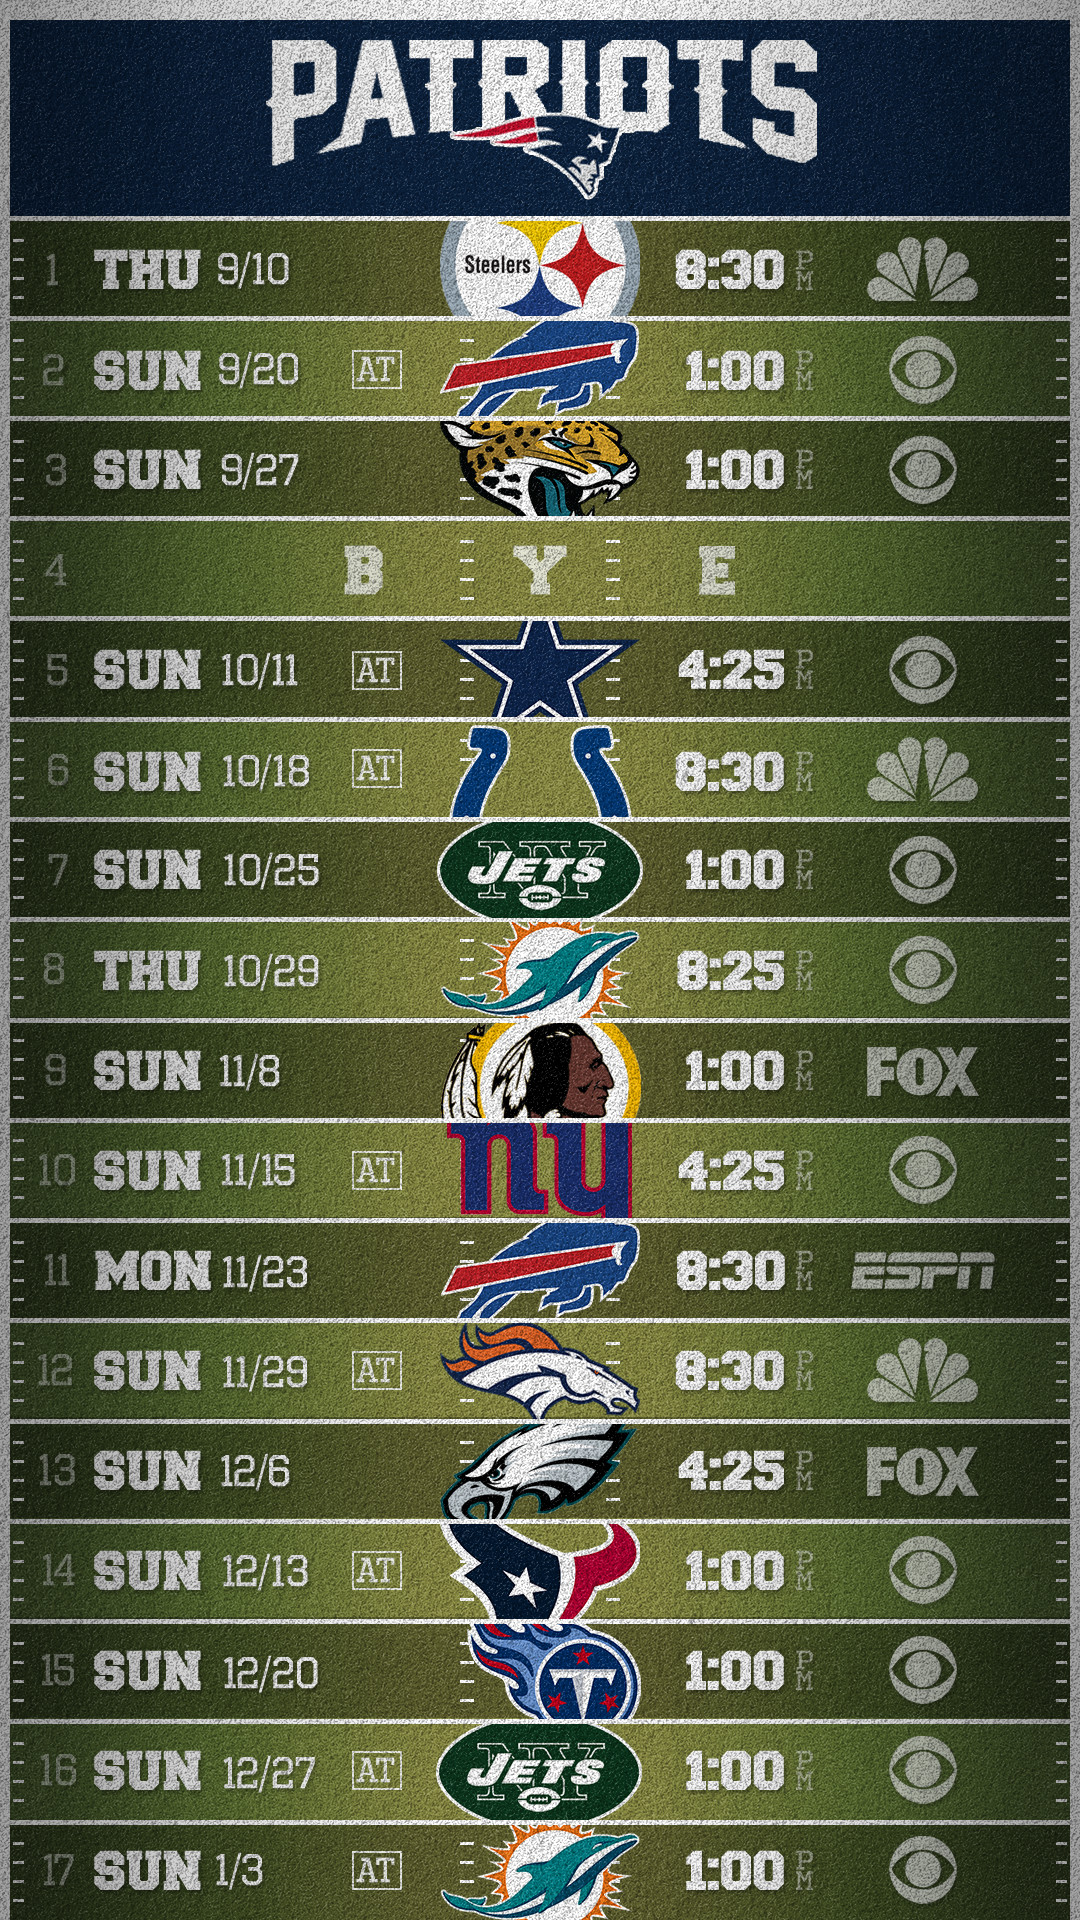 1080x1920 Patriots 2015 Mobile Schedule wallpaper (credit to /u/dbeat who made the  original 2014 version) ...